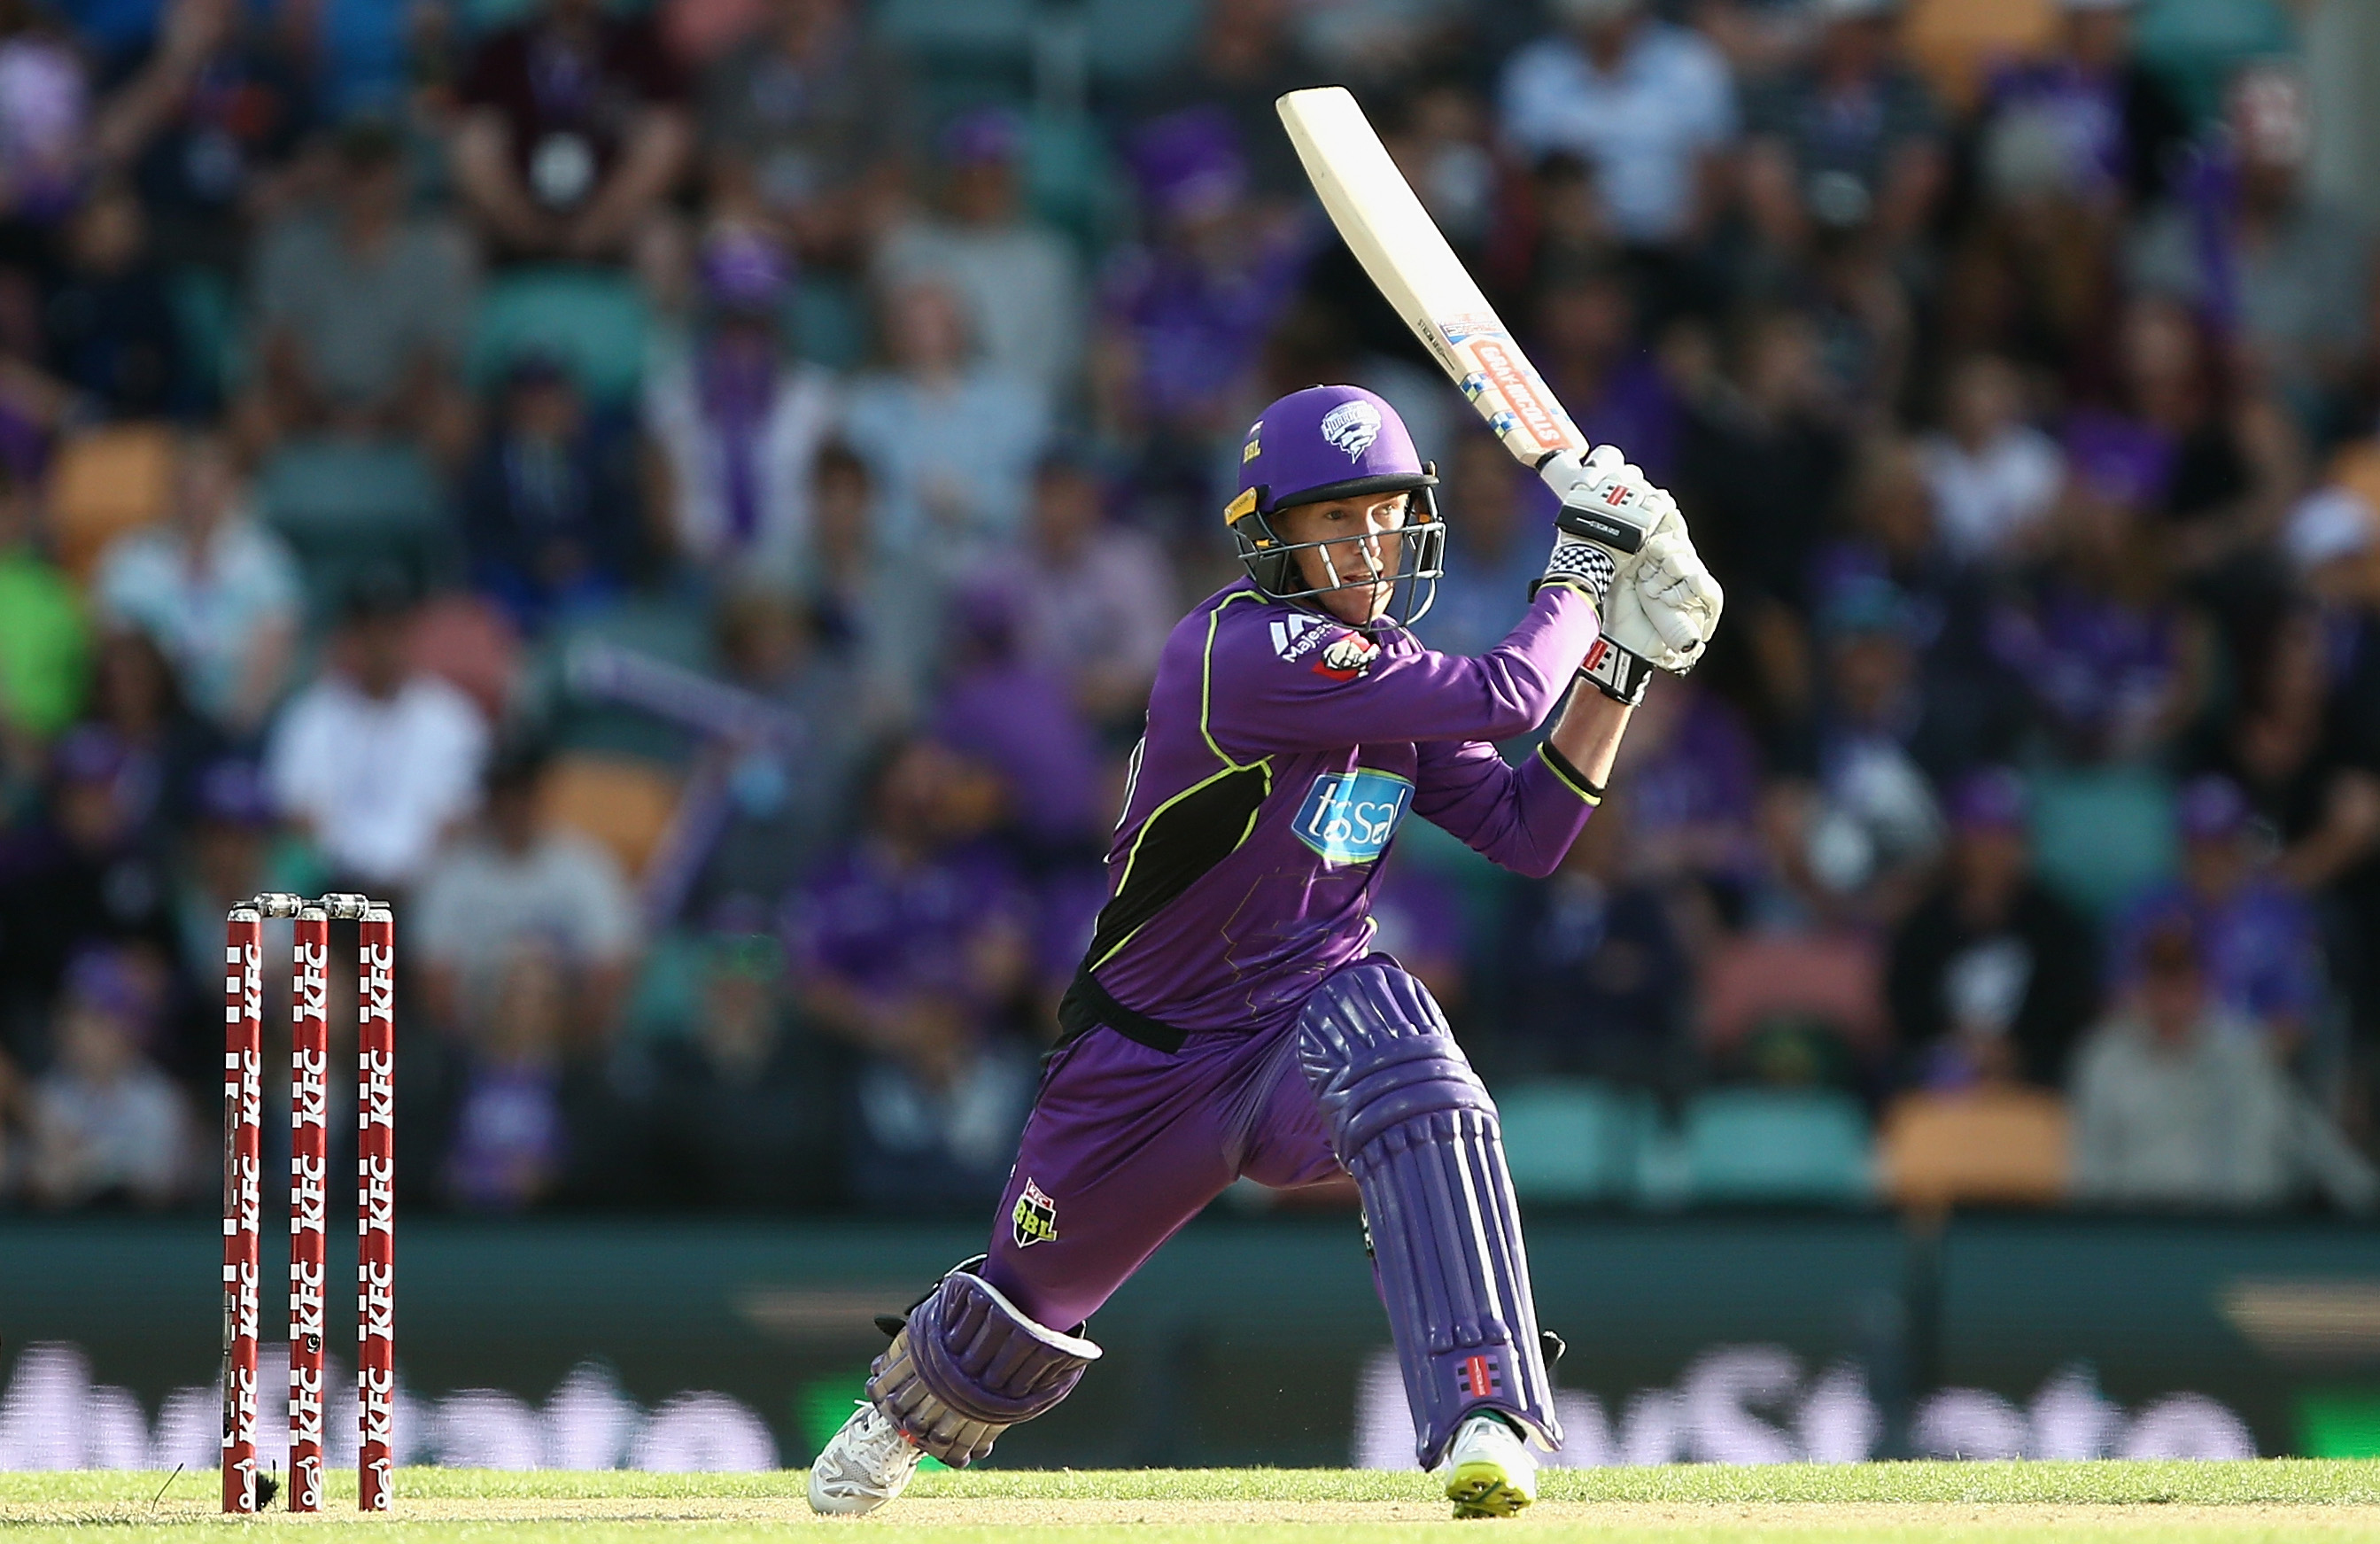 Obstruction debate heats up in Big Bash